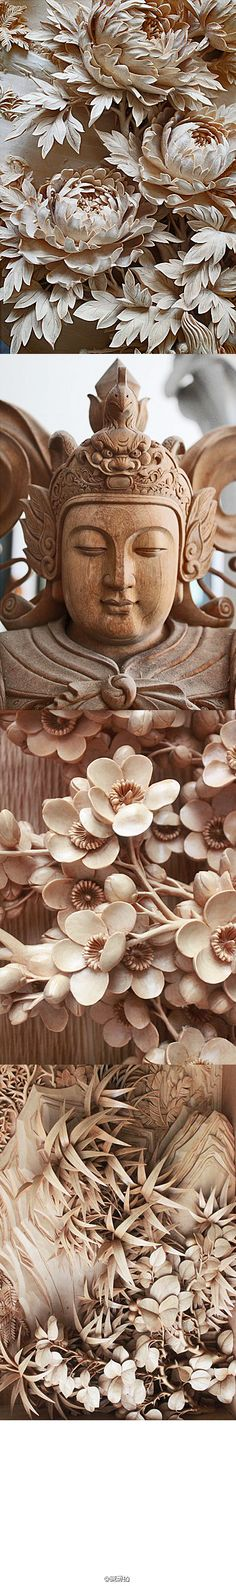 ✰ wood carving